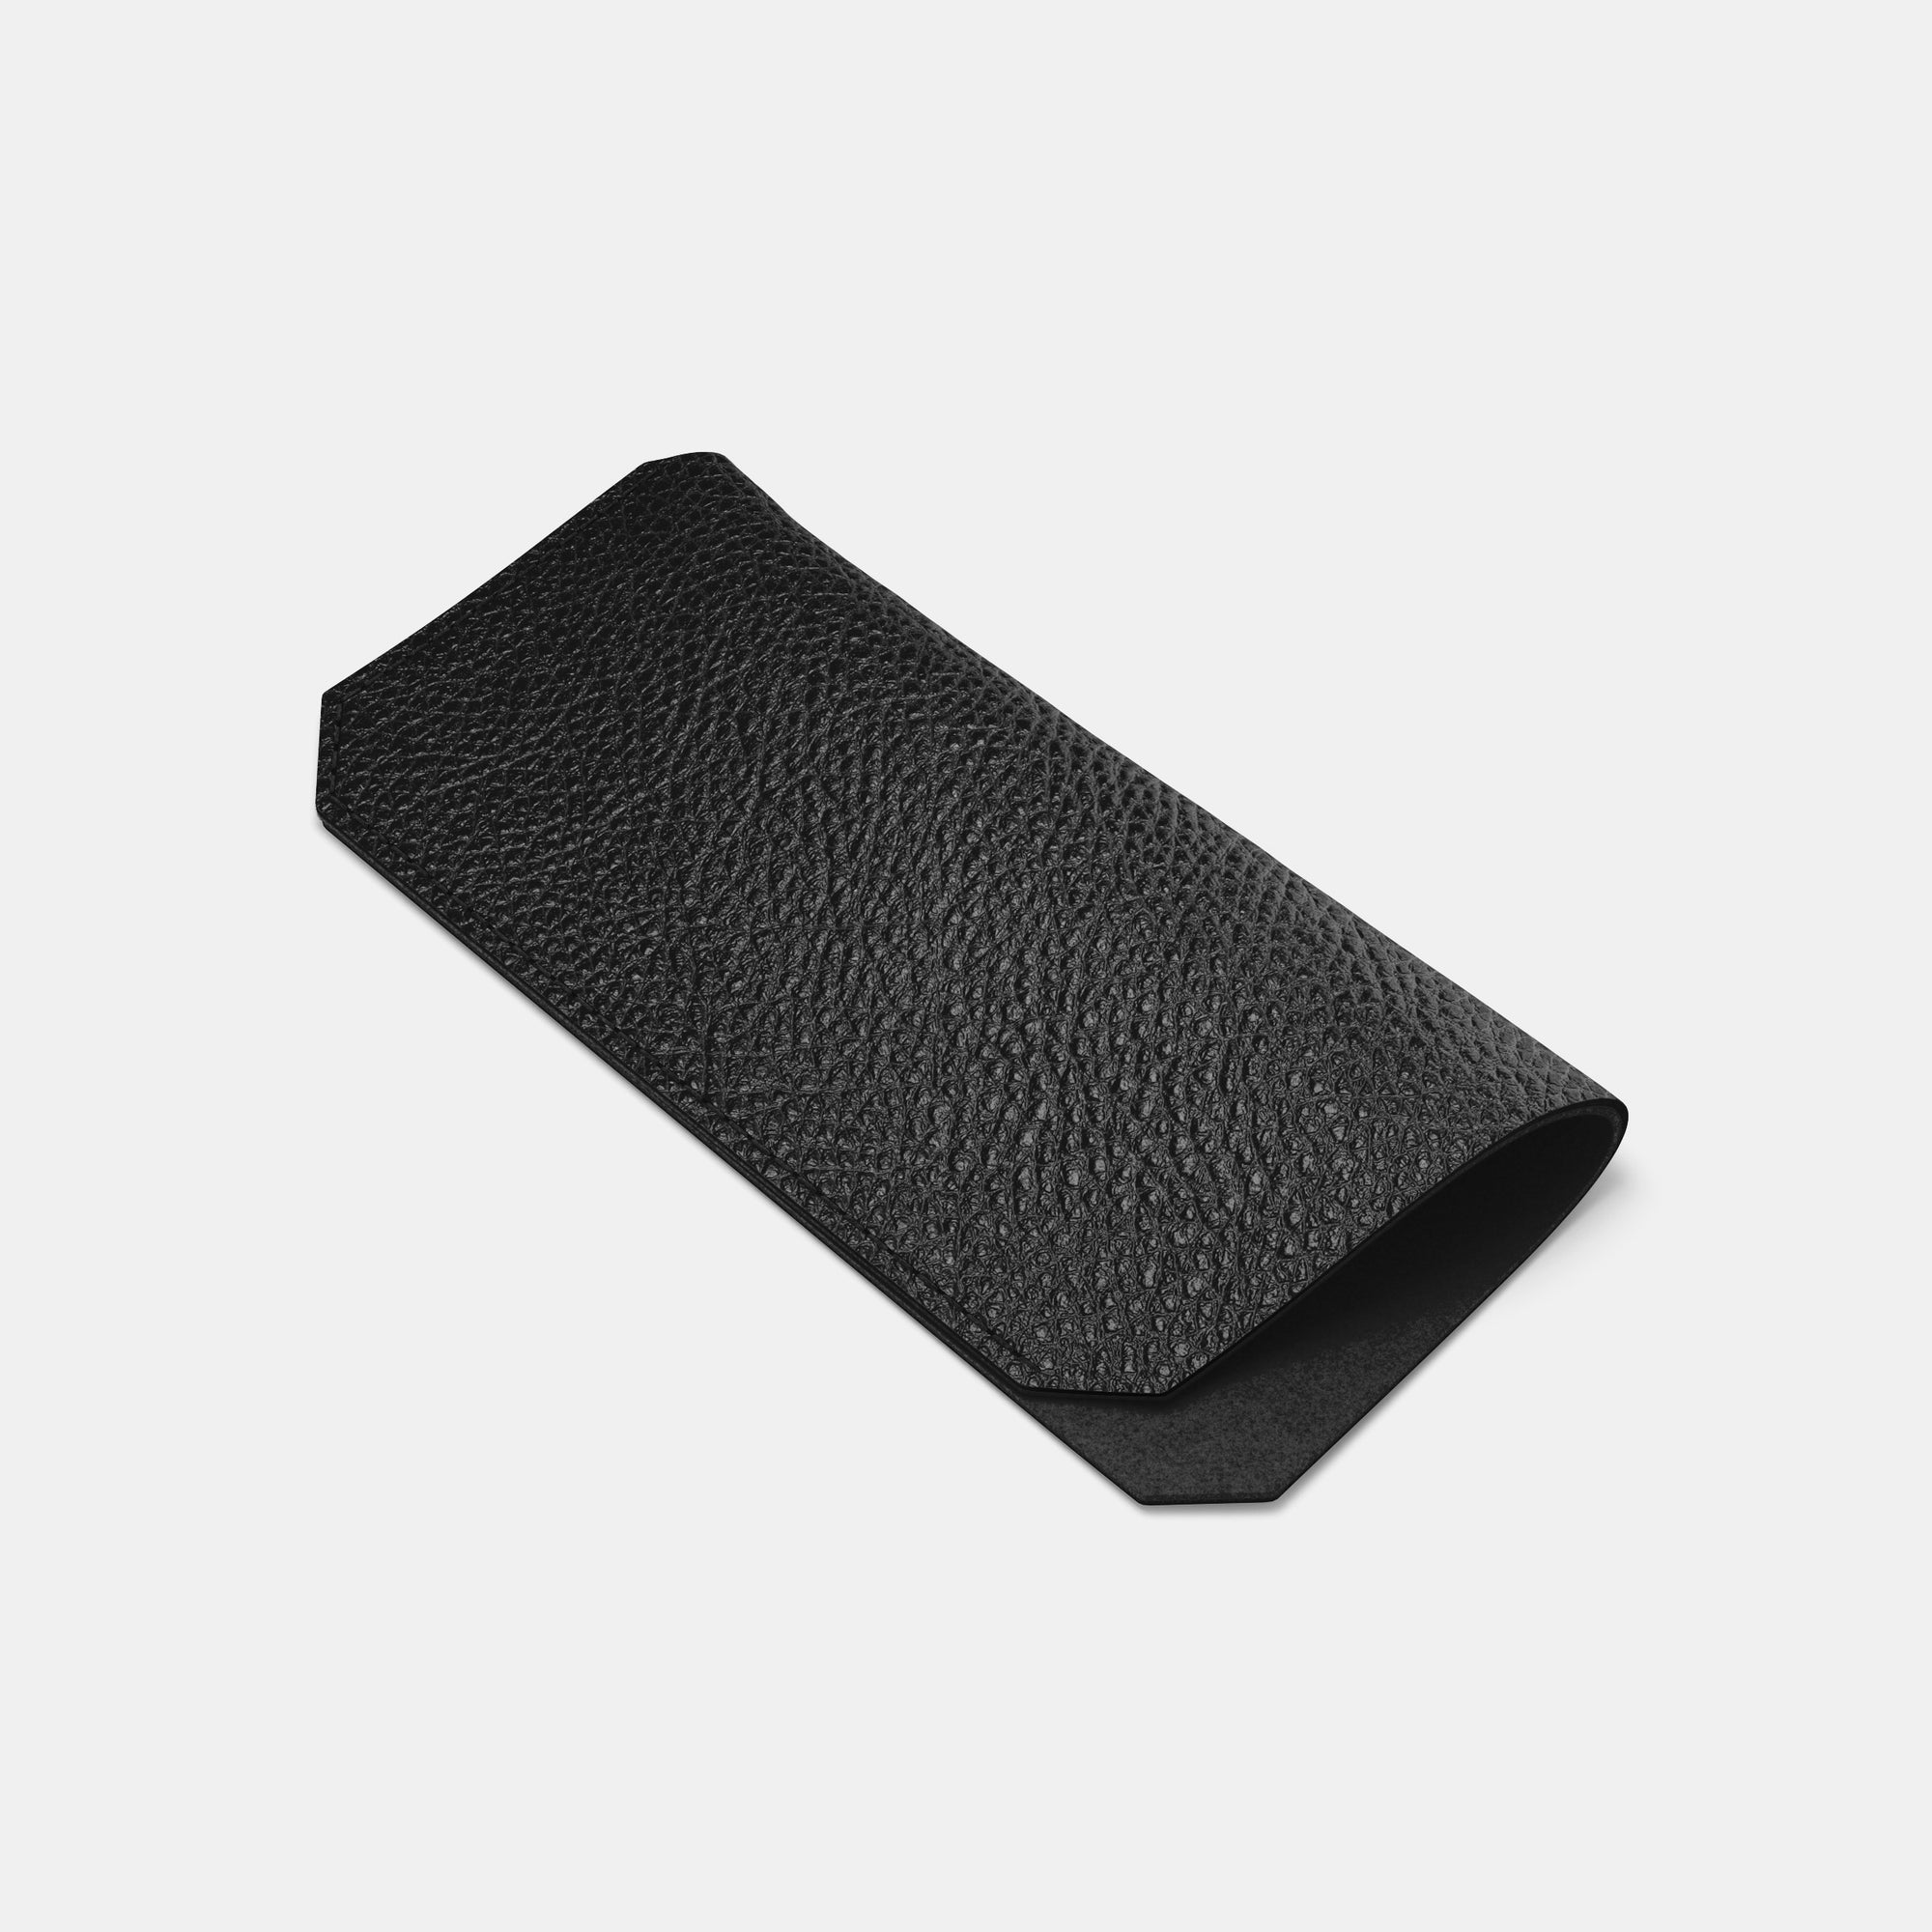 Sunglasses Case - Black and Black - RYAN London